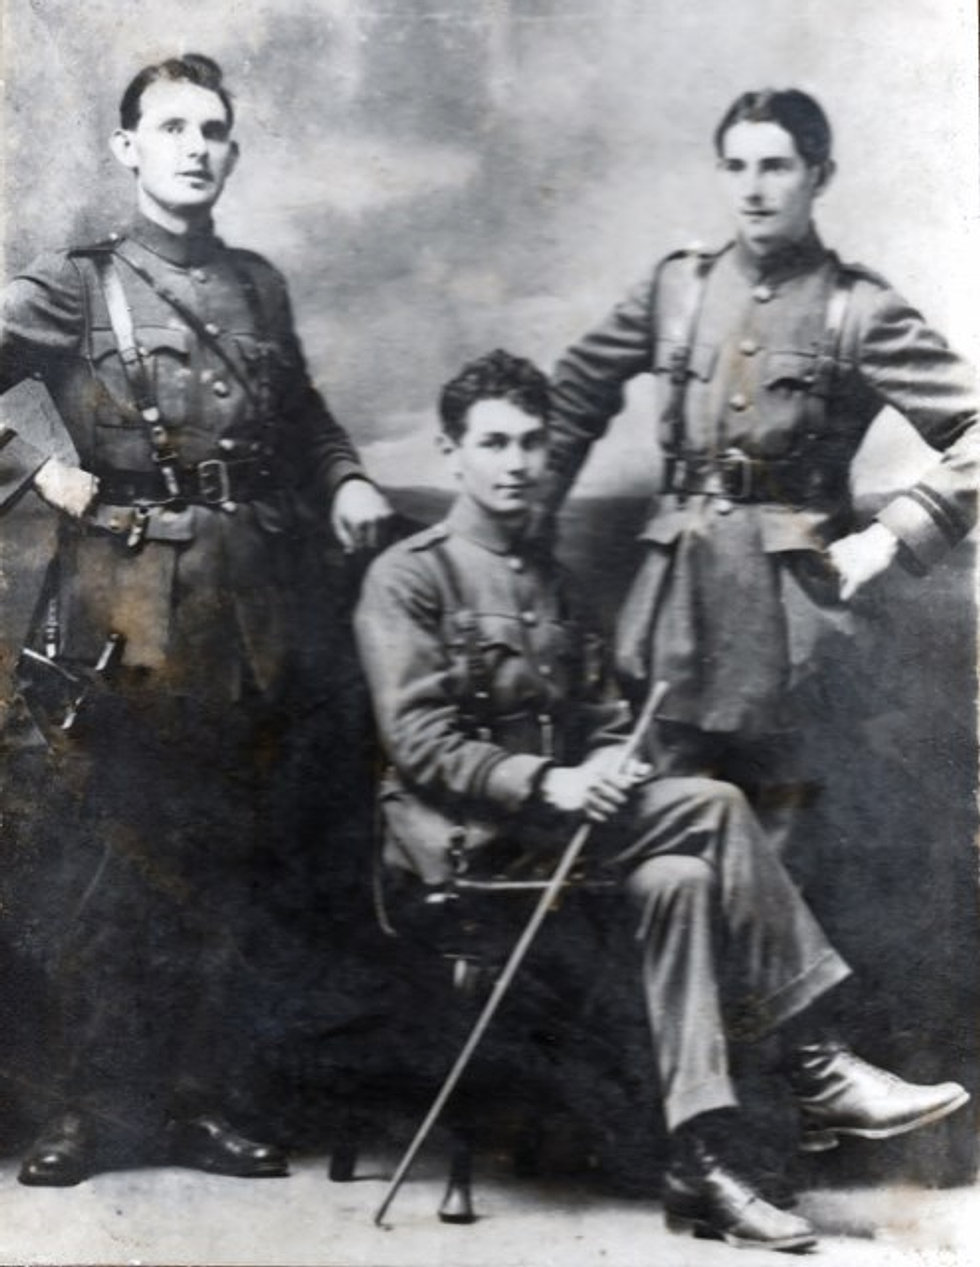 Jimmy Mac Eoin (center)